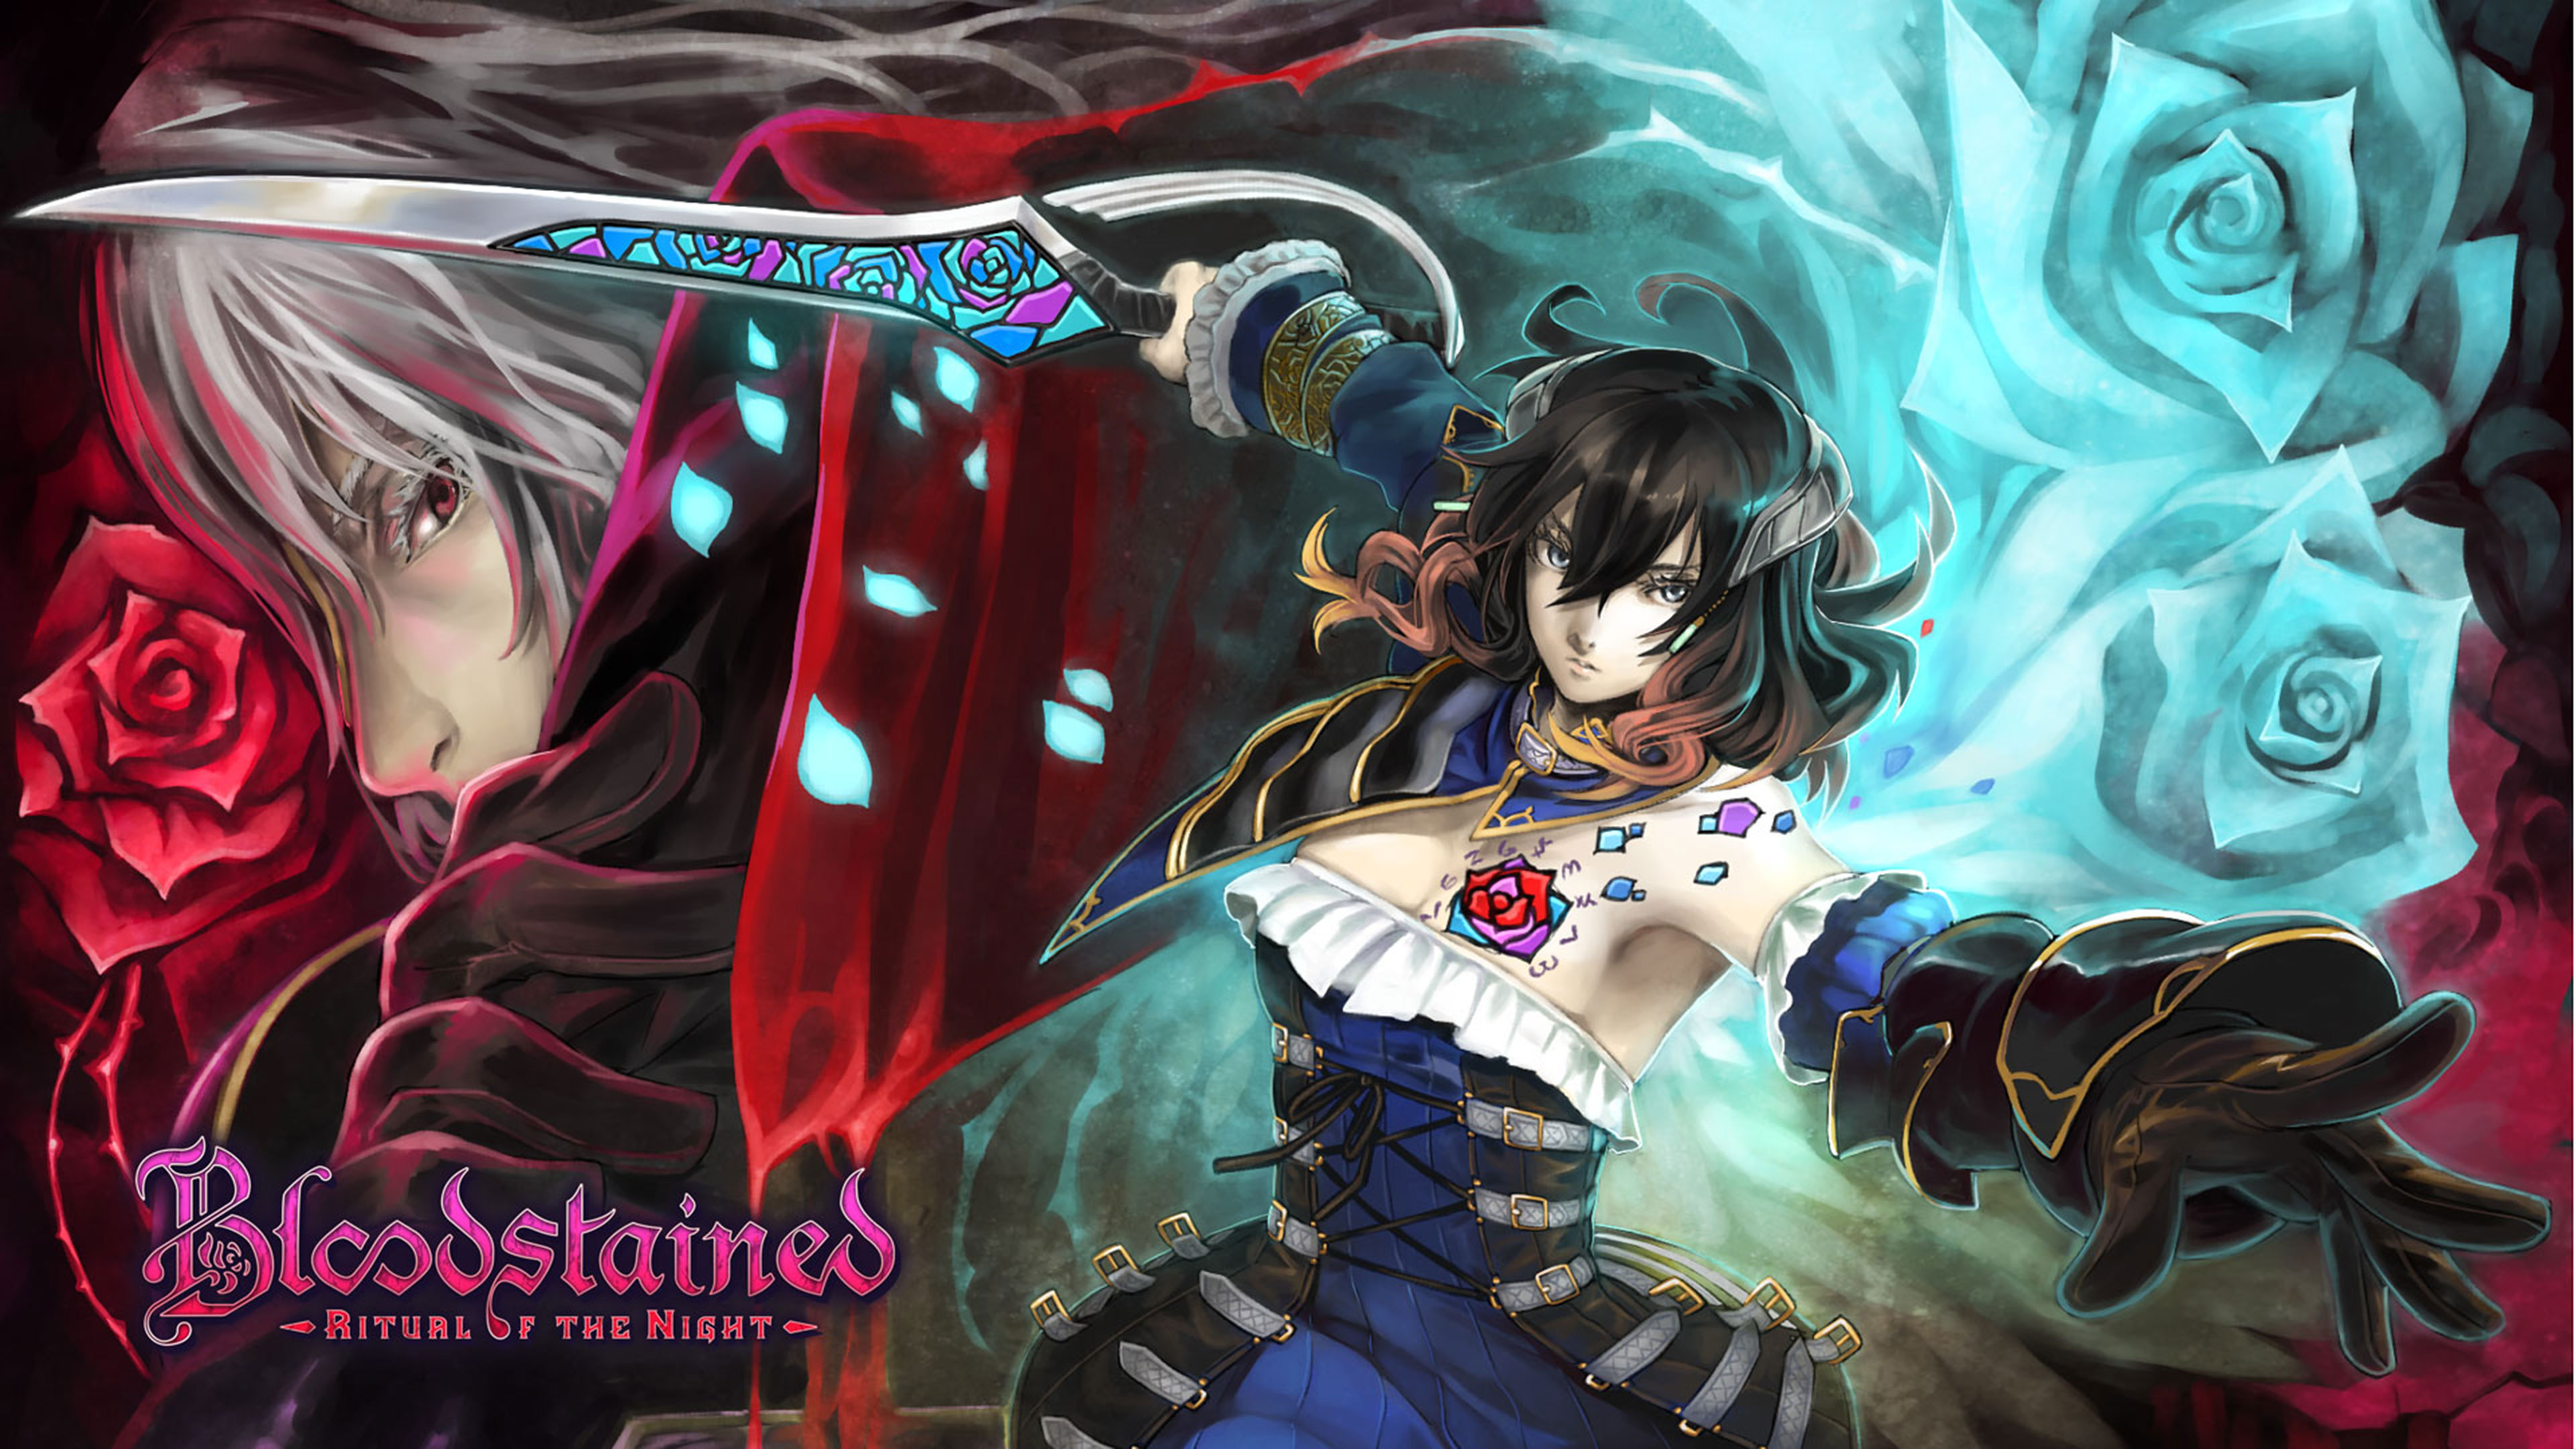 bloodstained: ritual of the night wallpapers in ultra hd | 4k